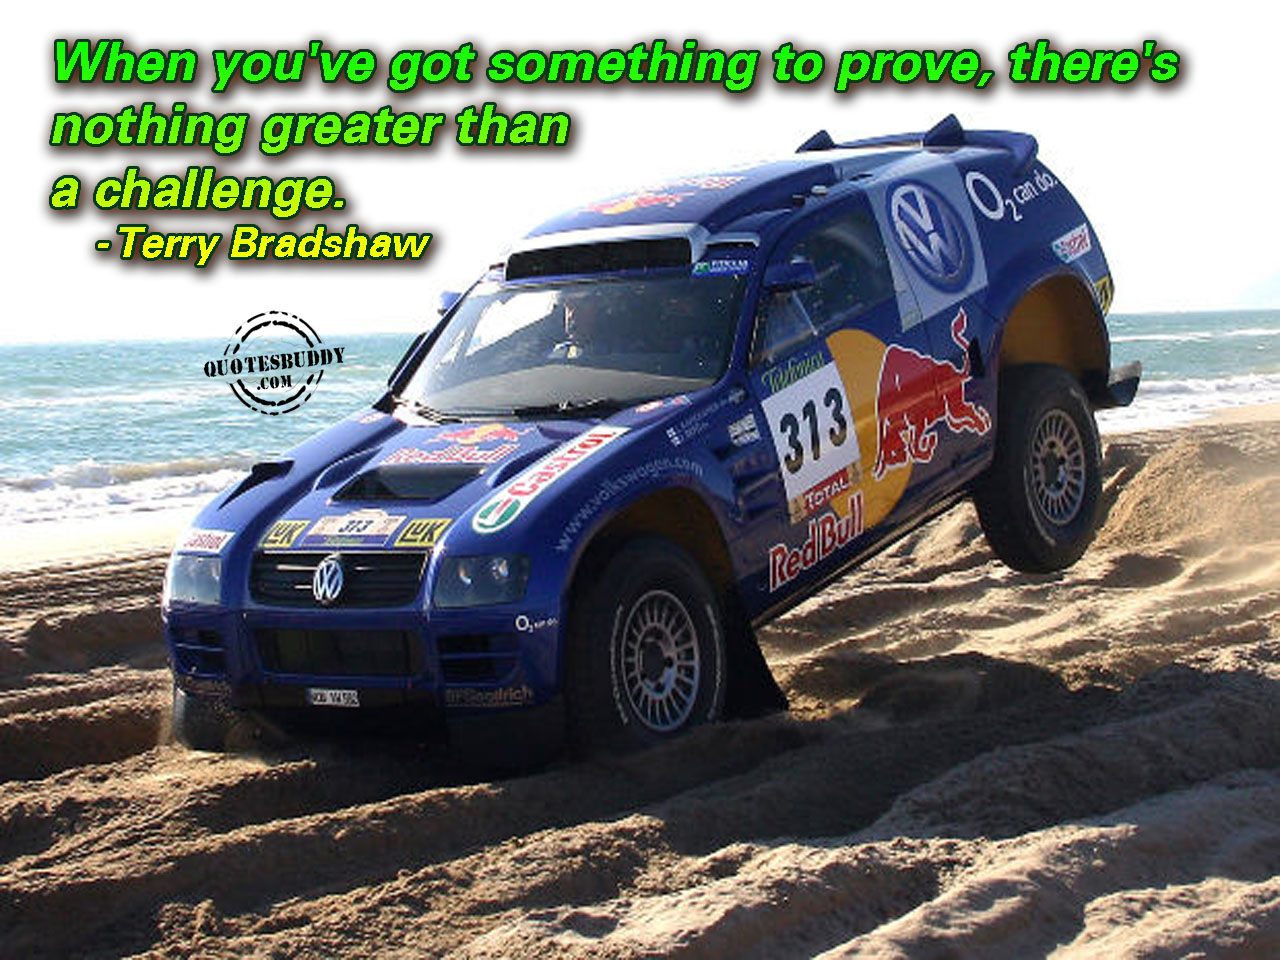 When You've got something to prove,there's nothing greater than a challenge ~ Challenge Quote